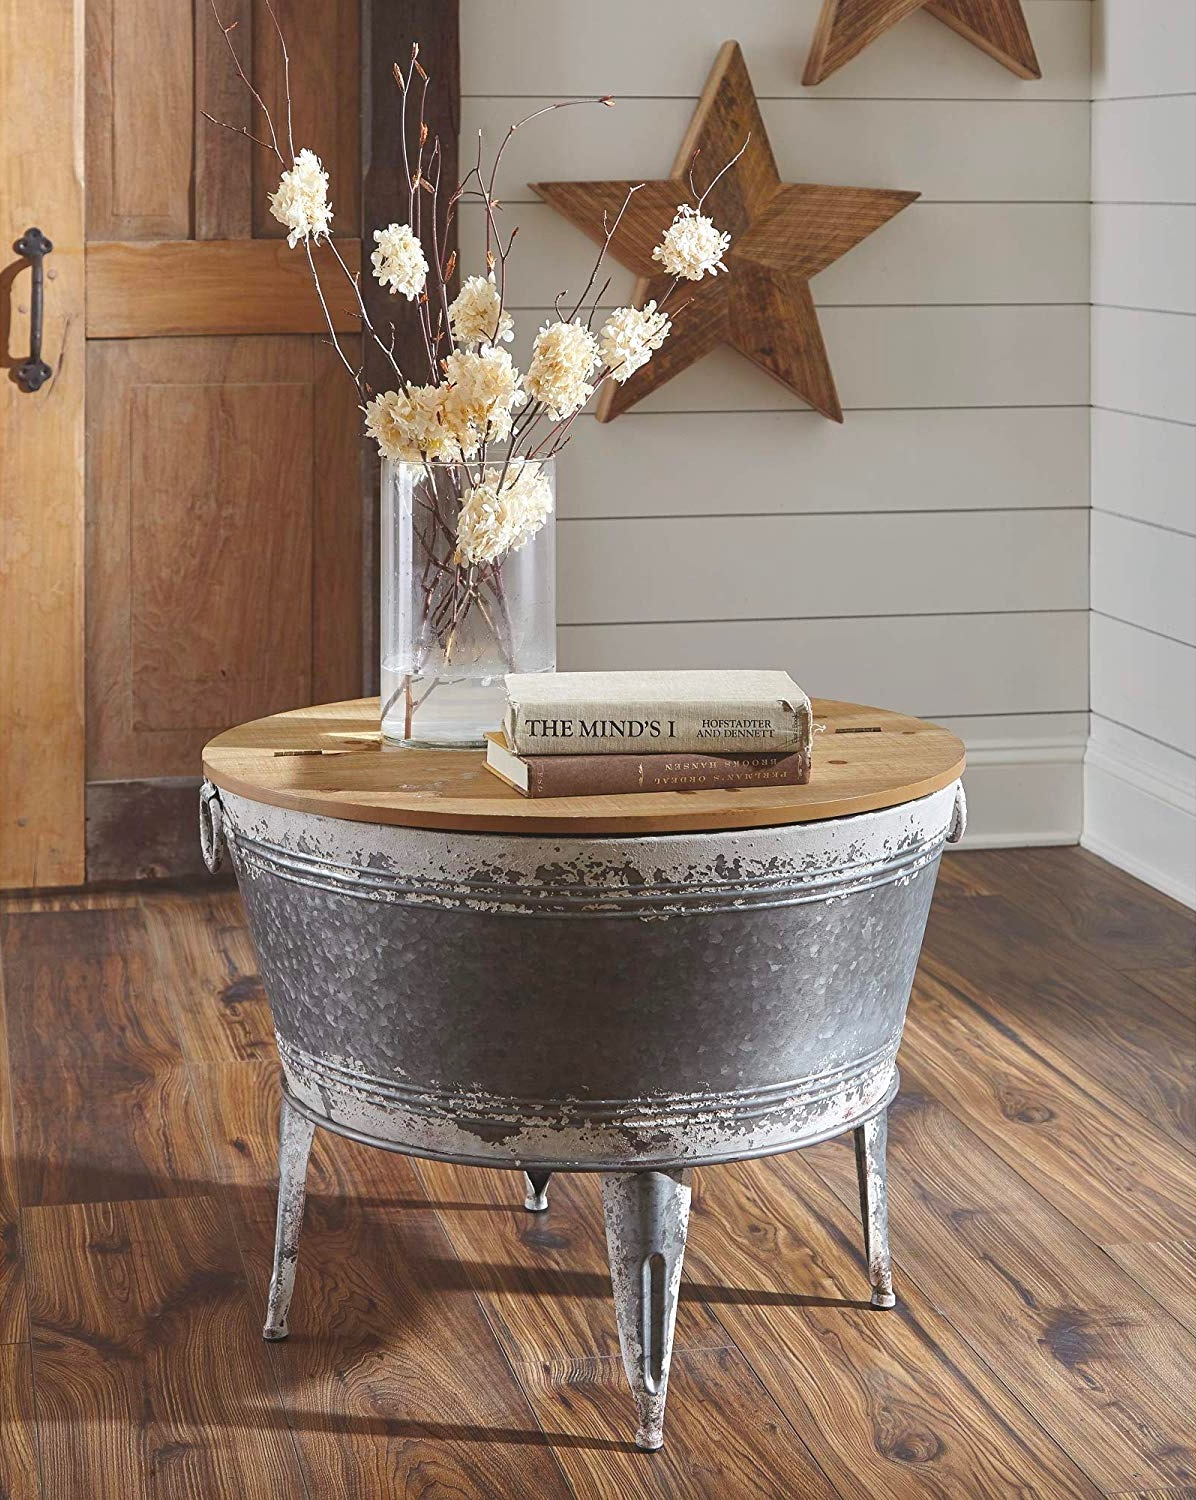 Rustic-Metal-Cauldron-Coffee-Table-With-4-Legs-Galvanized-Steel